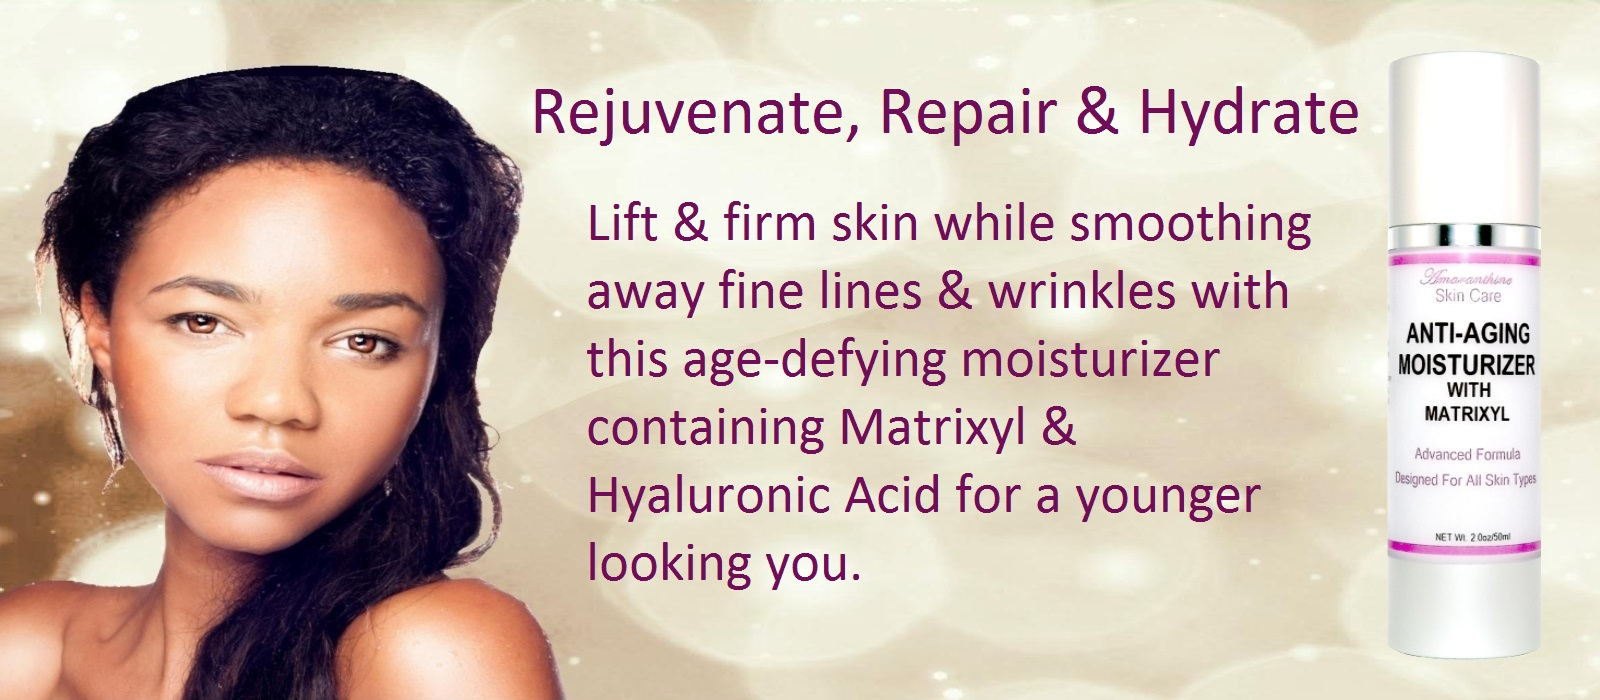 Anti-Aging Moisturizer With Matrixyl